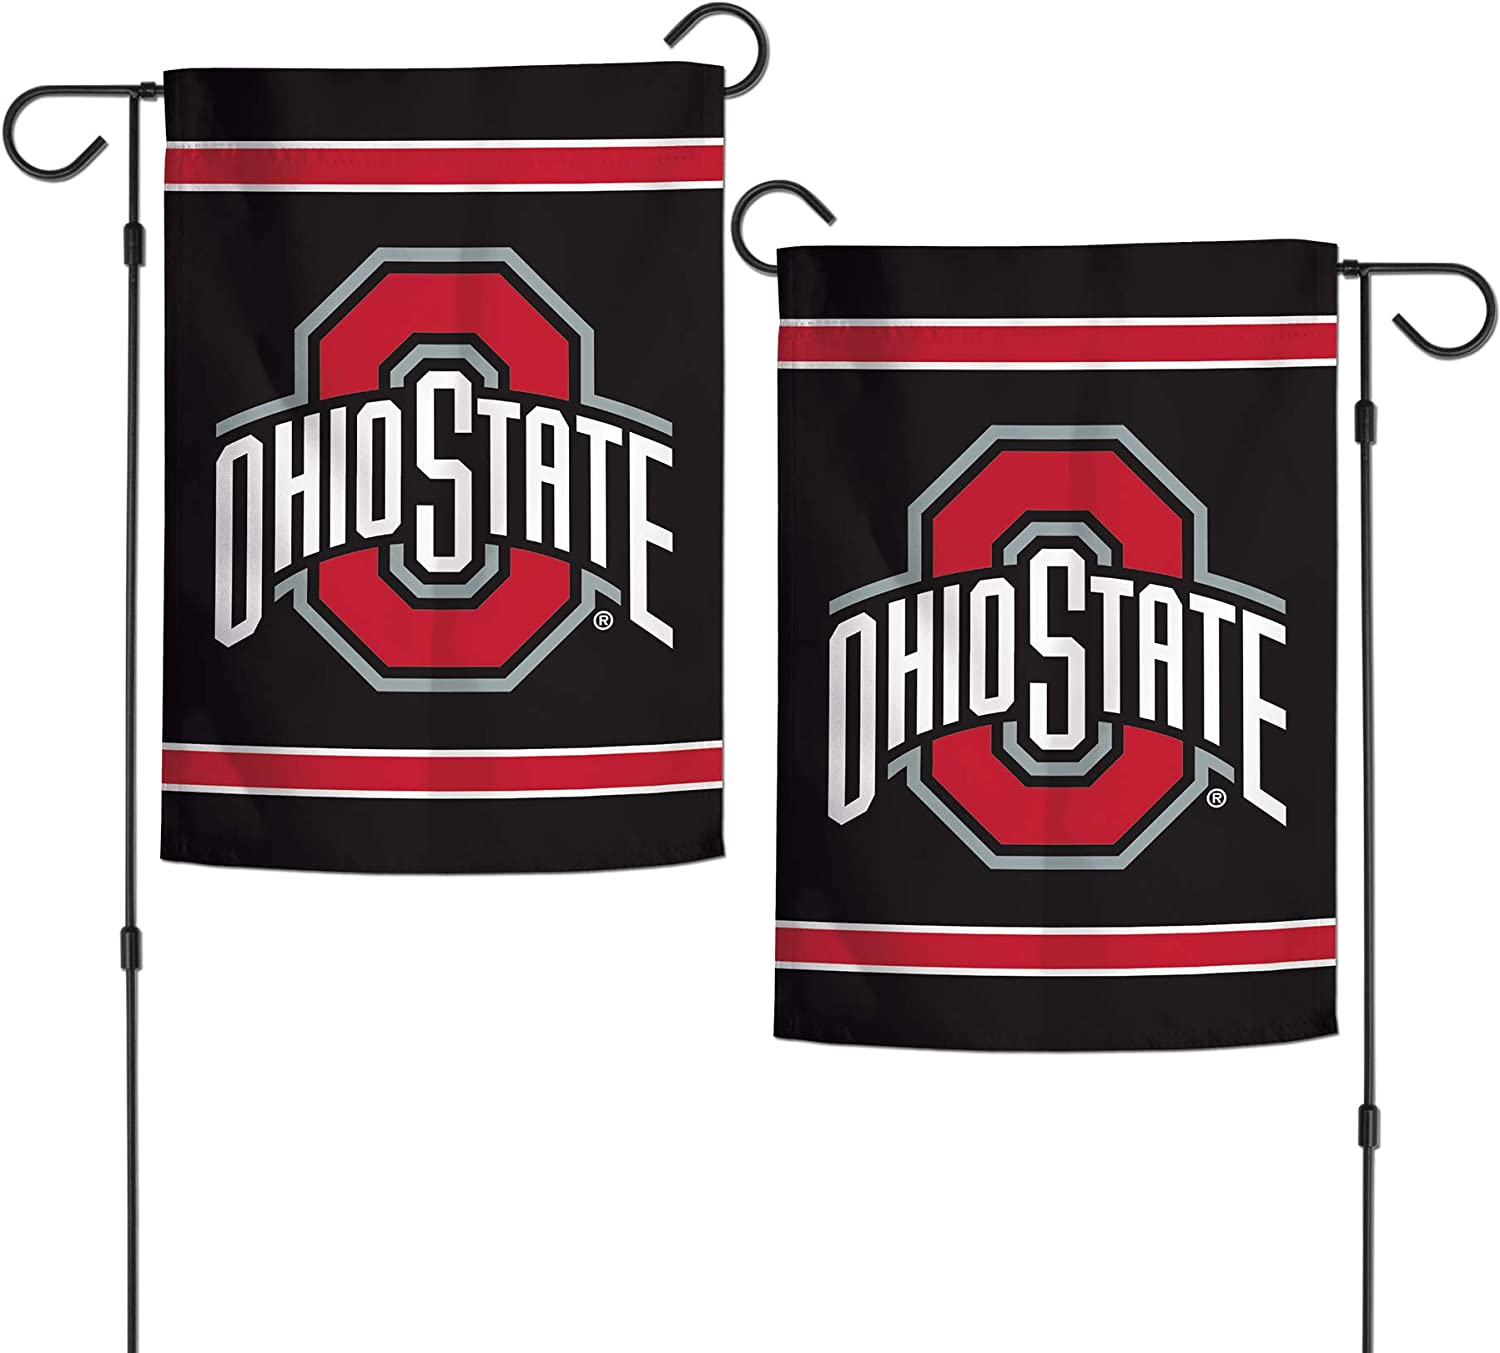 "WinCraft NCAA Ohio State University Buckeyes 12.5"" x 18"" Inch 2-Sided Garden Flag Logo"